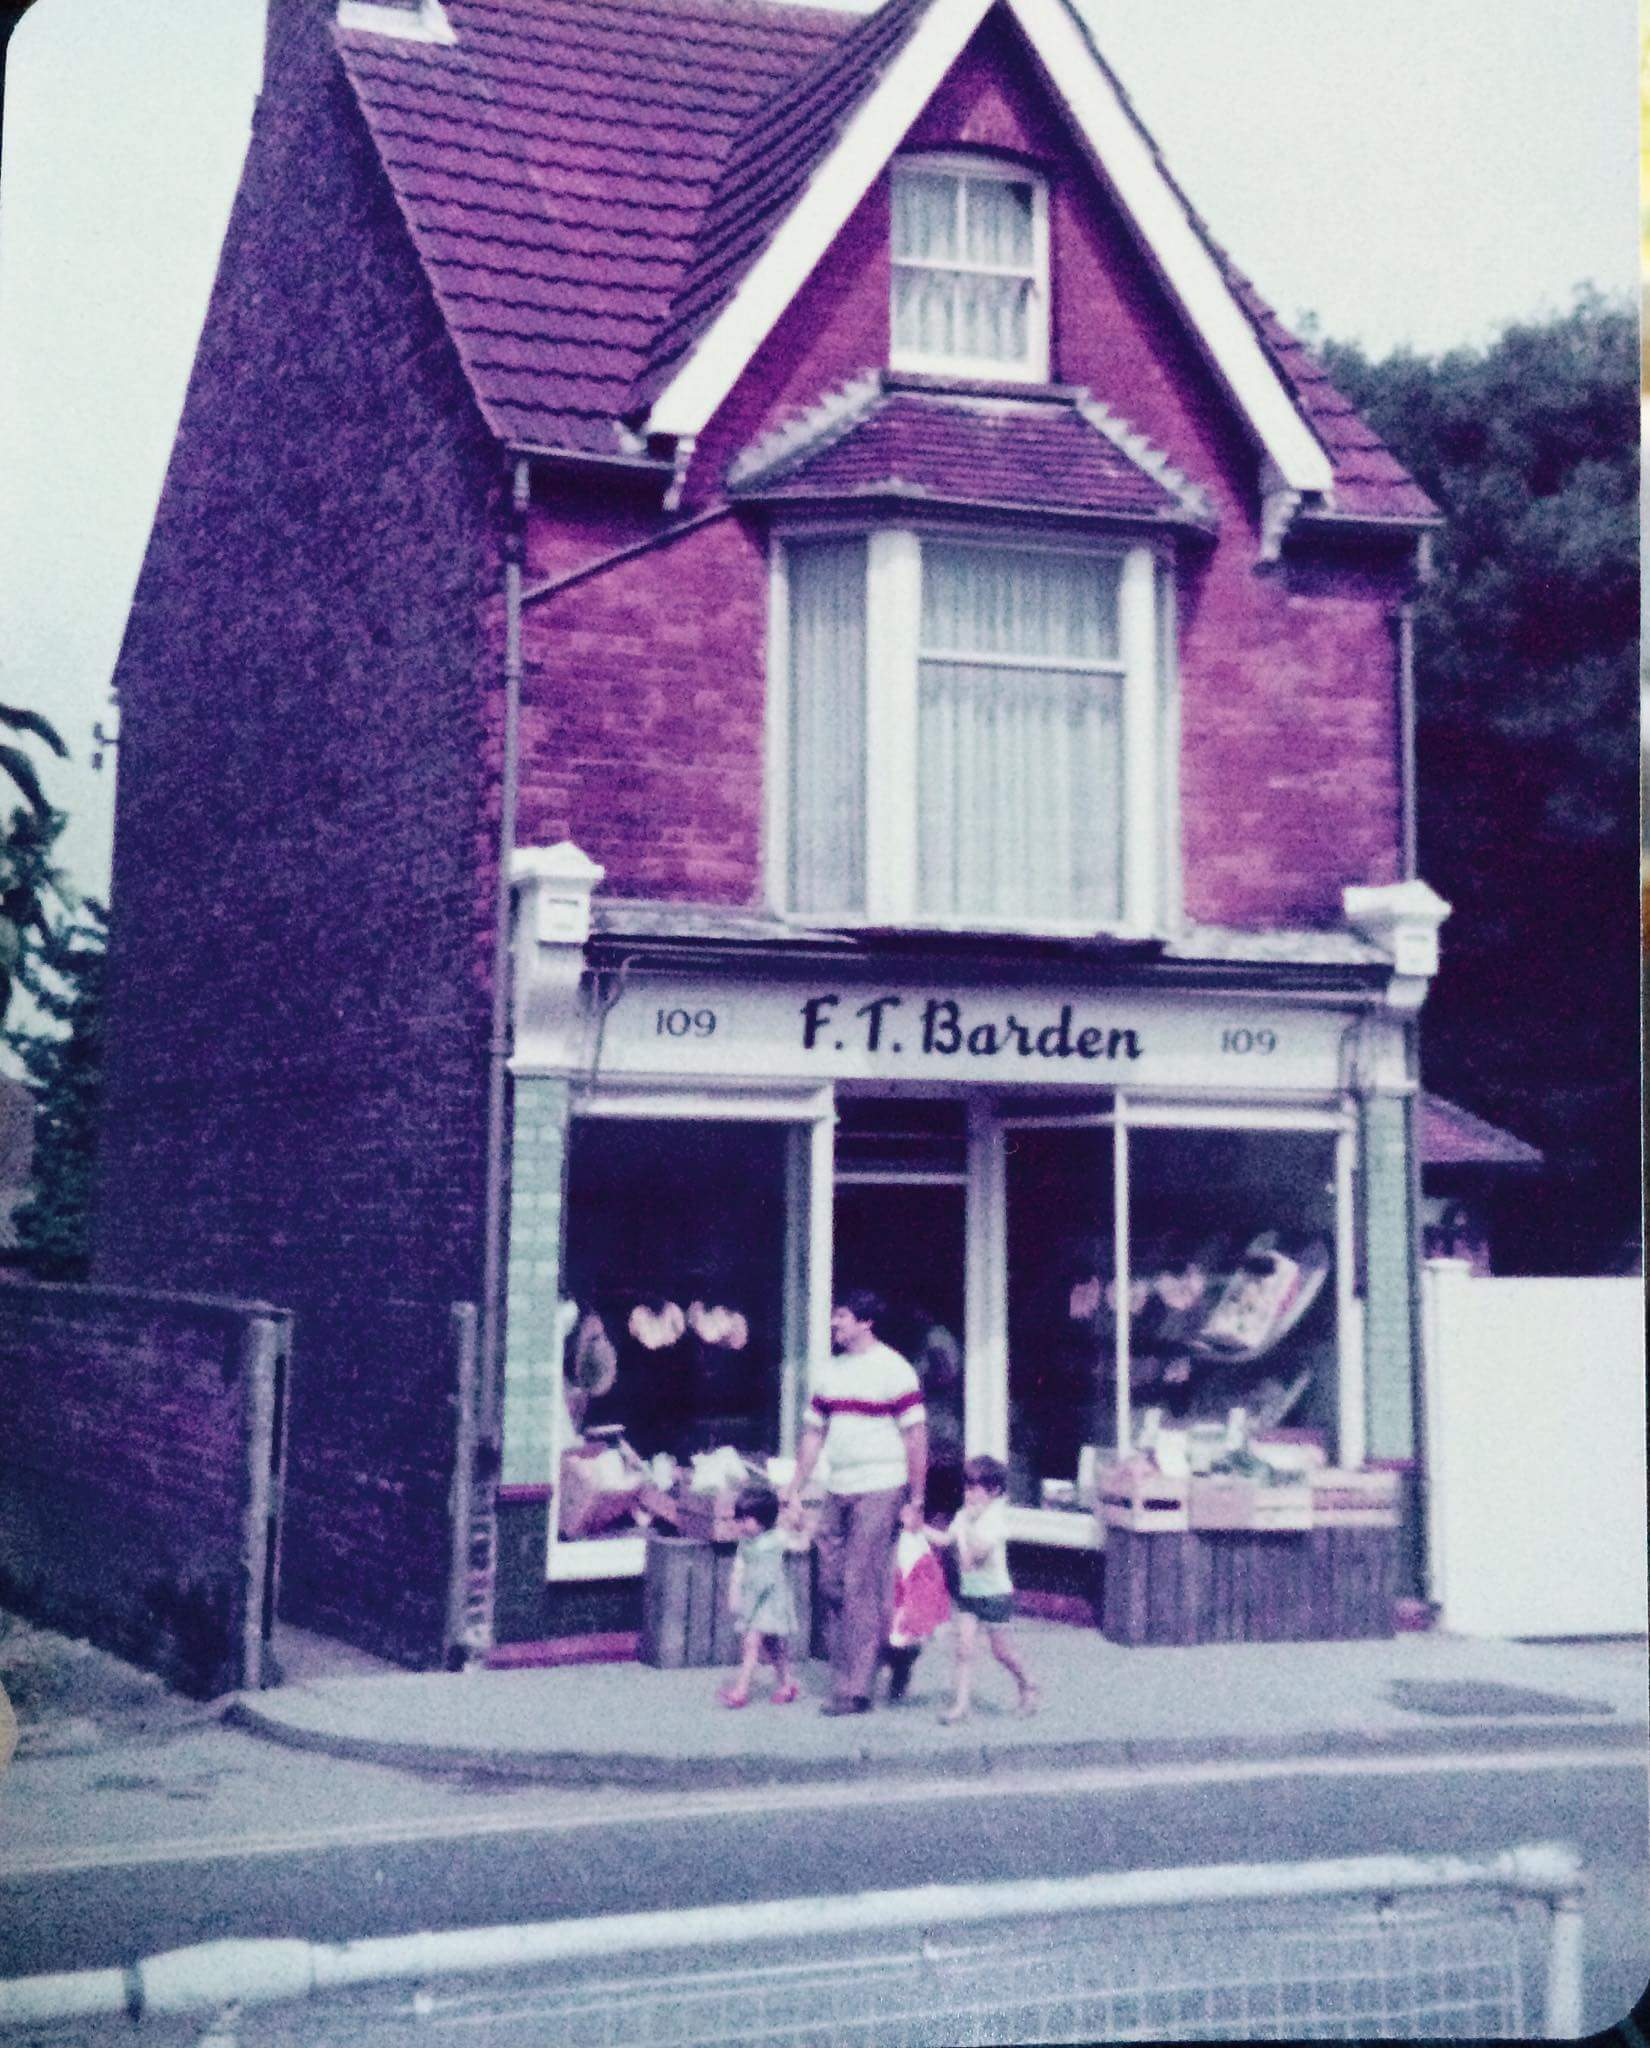 FT Barden Greengrocers Rainham 1979